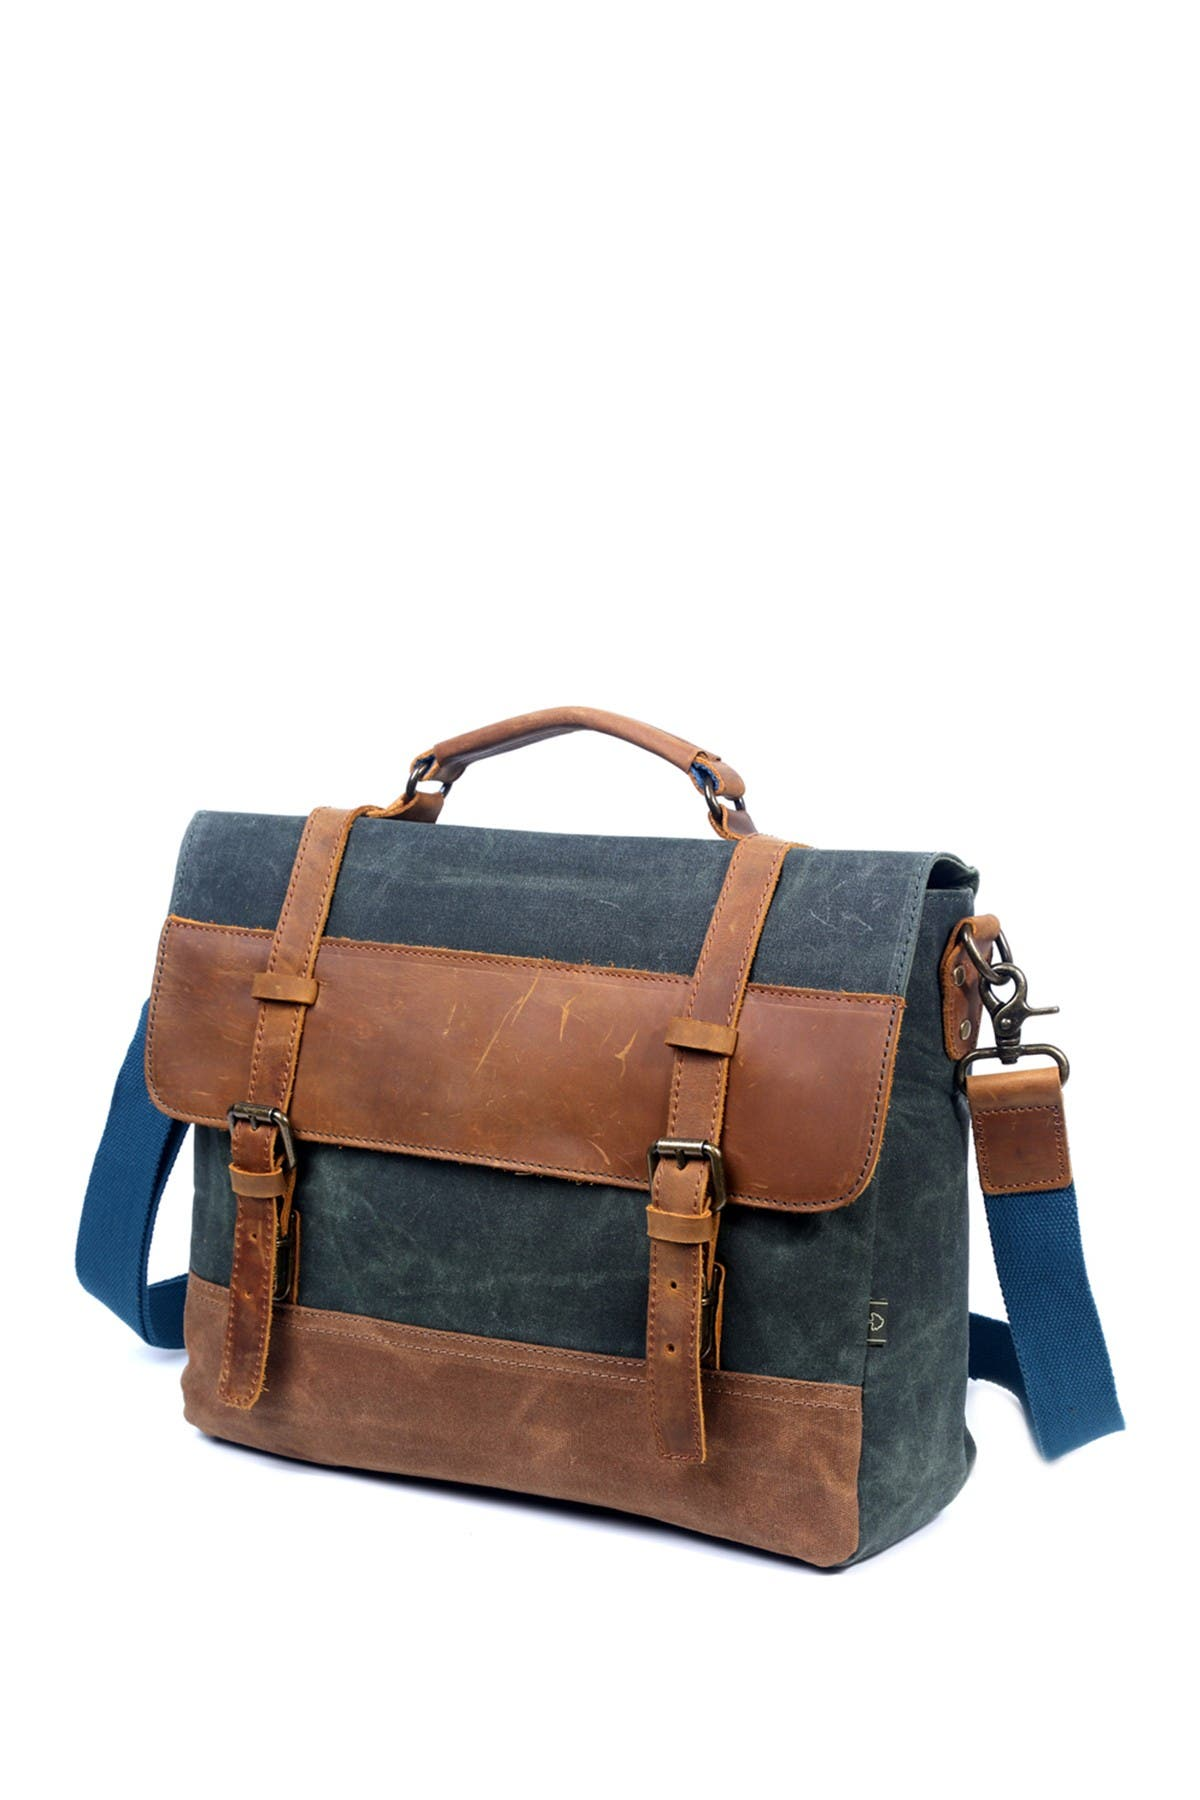 Image of TSD Stone Creek Waxed Canvas Briefcase